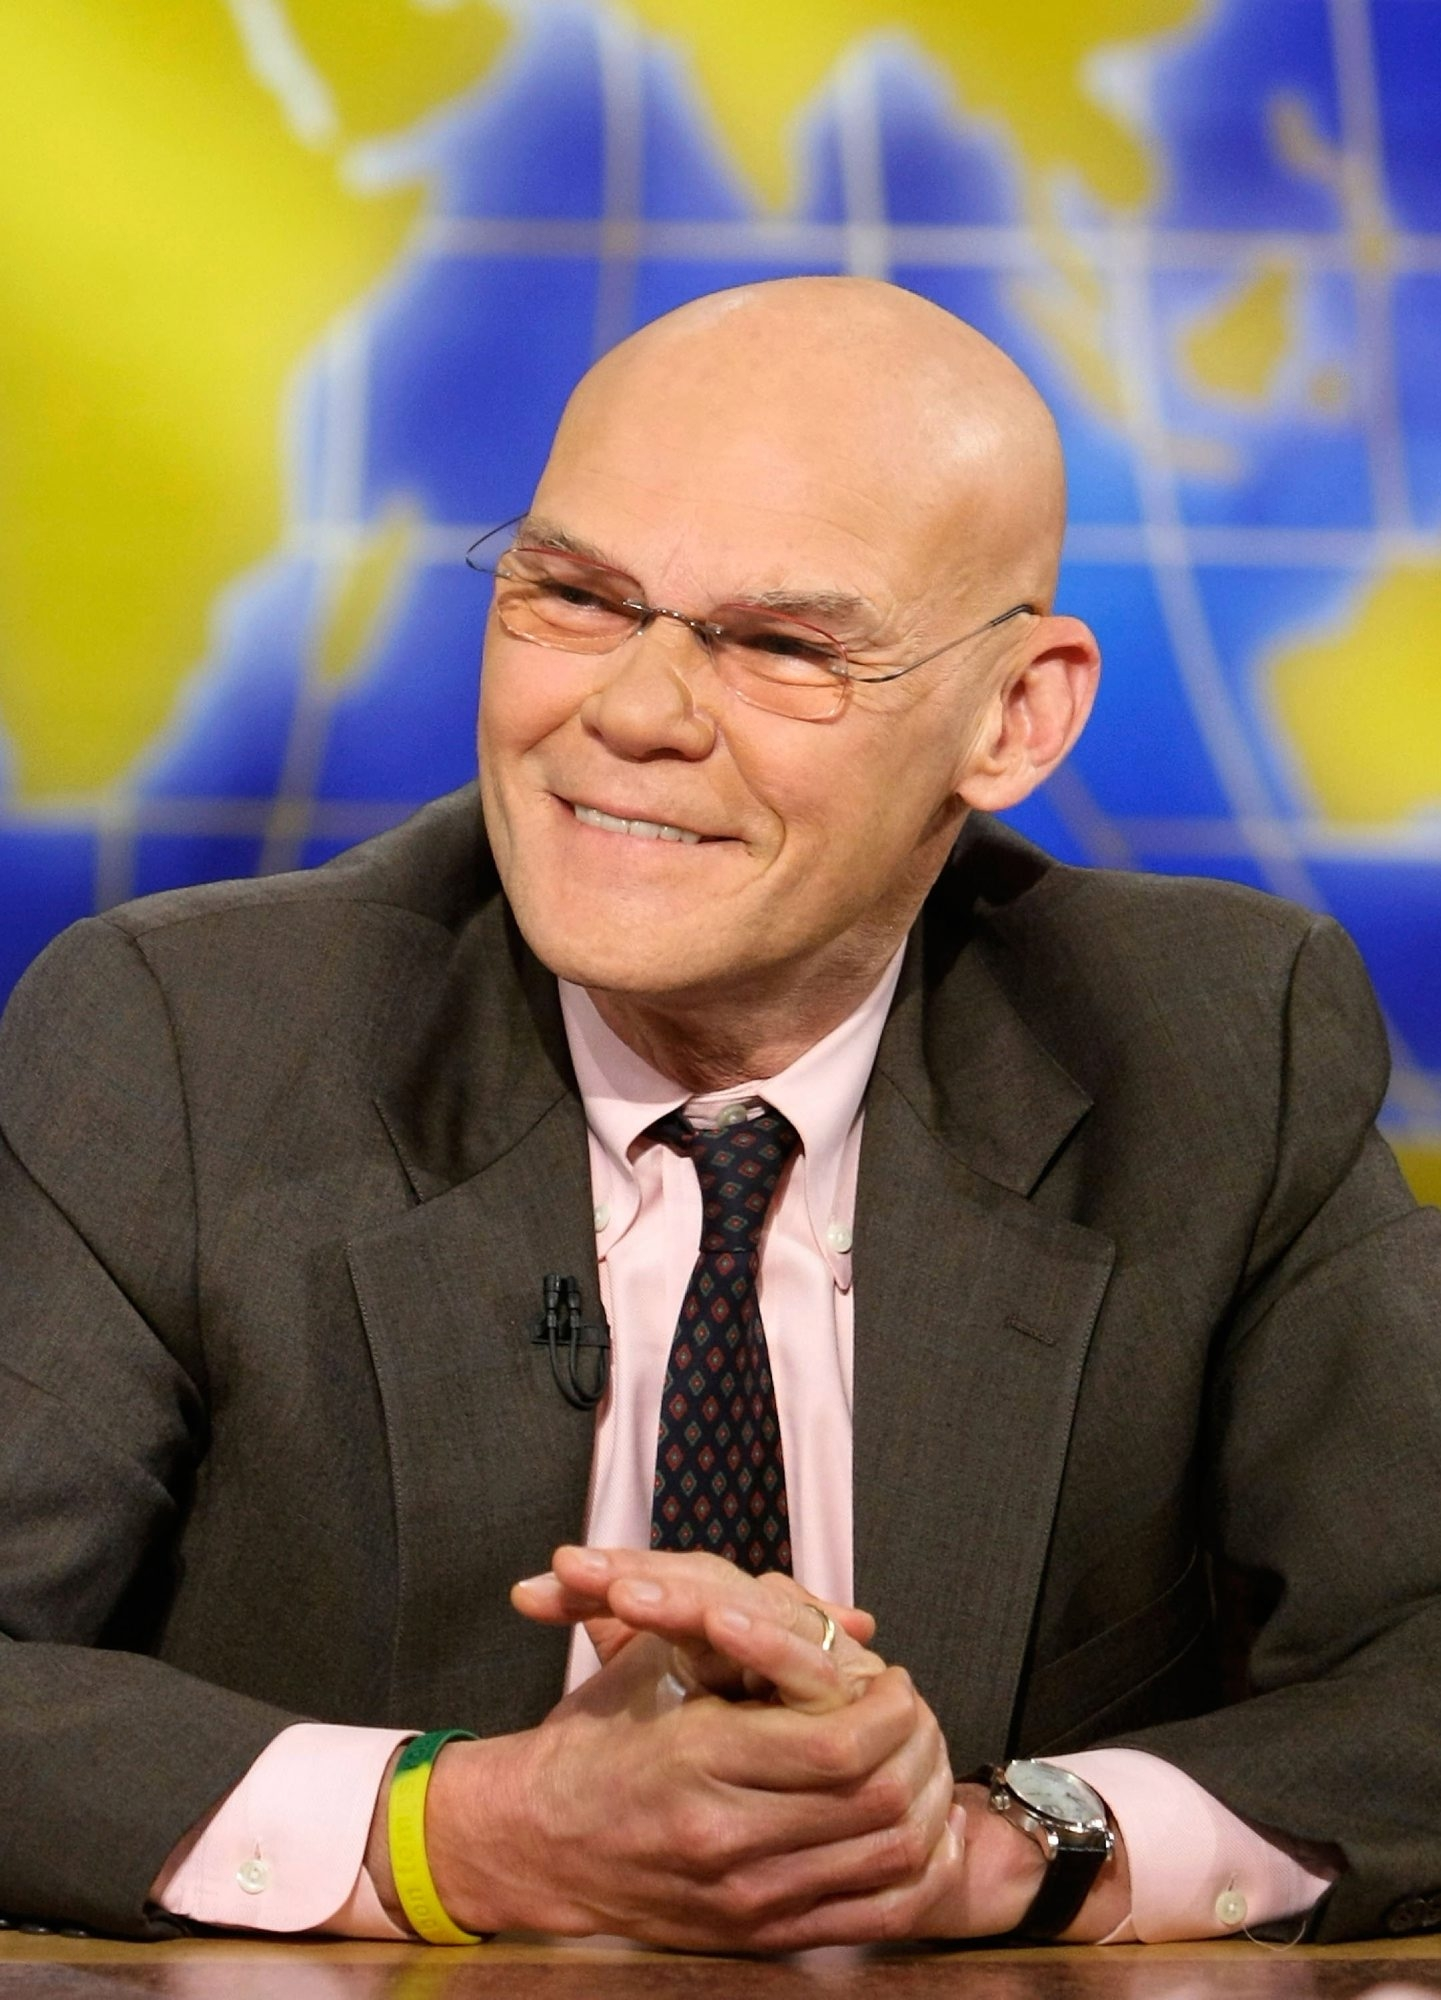 James Carville suggests that Hillary Clinton should think of Buffalo as the anti-Washington.